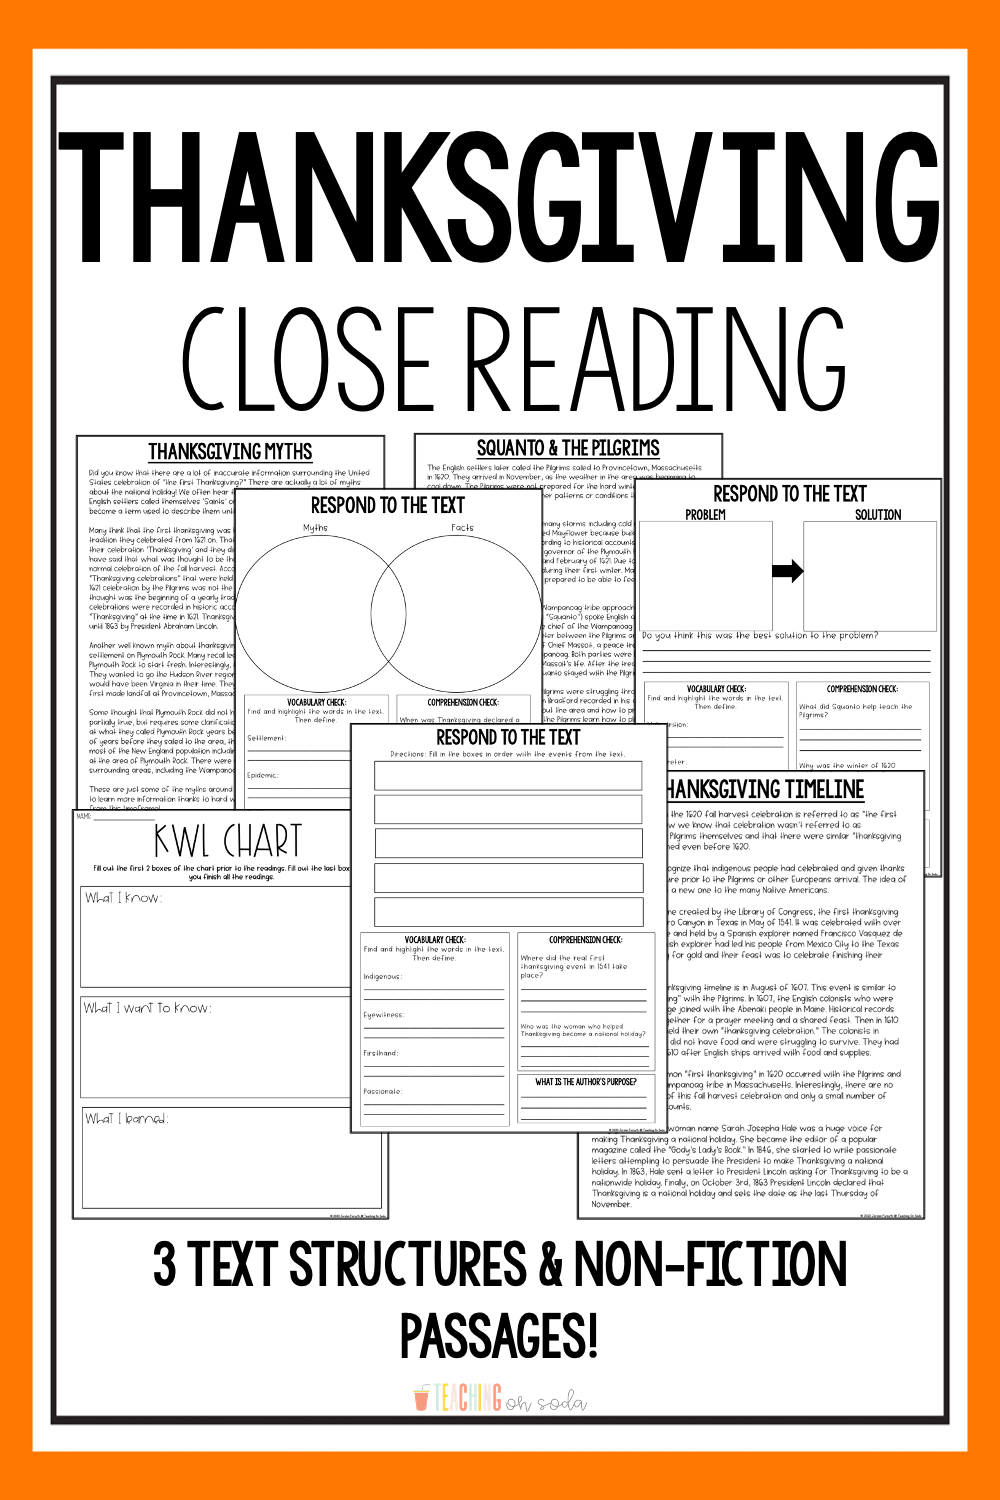 Thanksgiving Close Reading Passages Kwl Chart Text Structures In 2020 Thanksgiving Reading Passages Close Reading Passages Thanksgiving Passages [ 1500 x 1000 Pixel ]